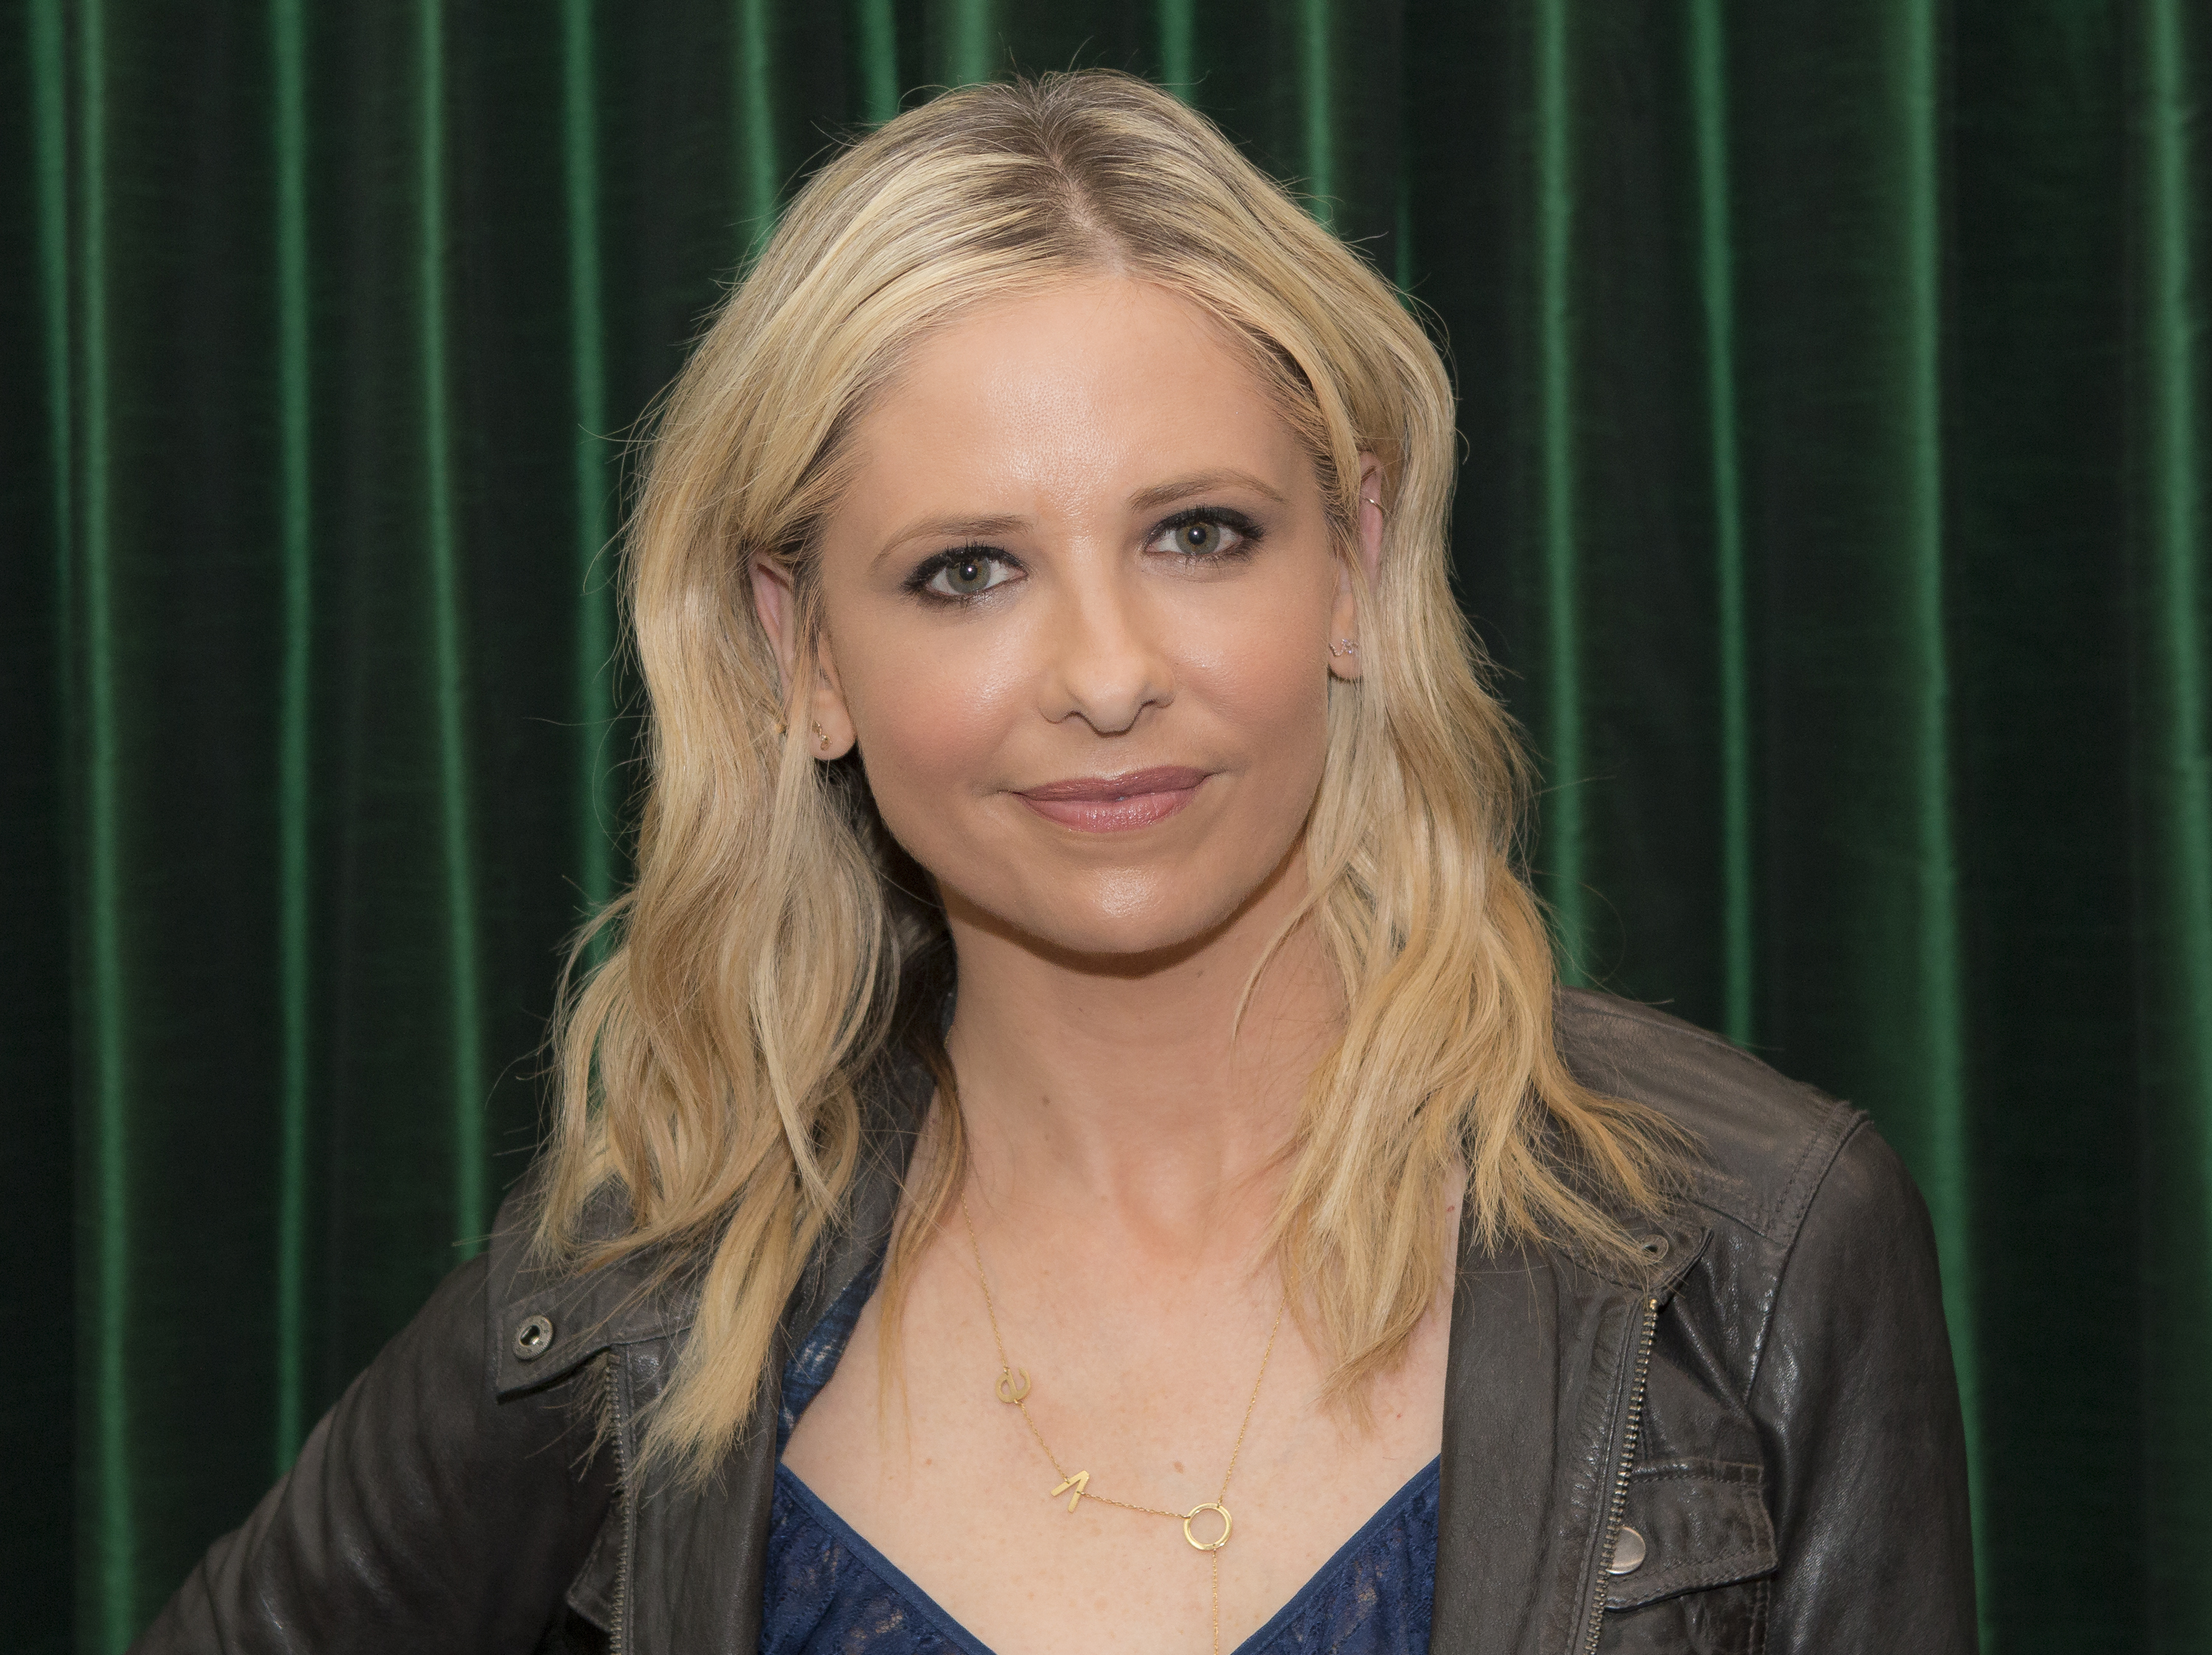 Sarah Michelle Gellar has a Buffy the Vampire Slayer-themed purse, and we need one too